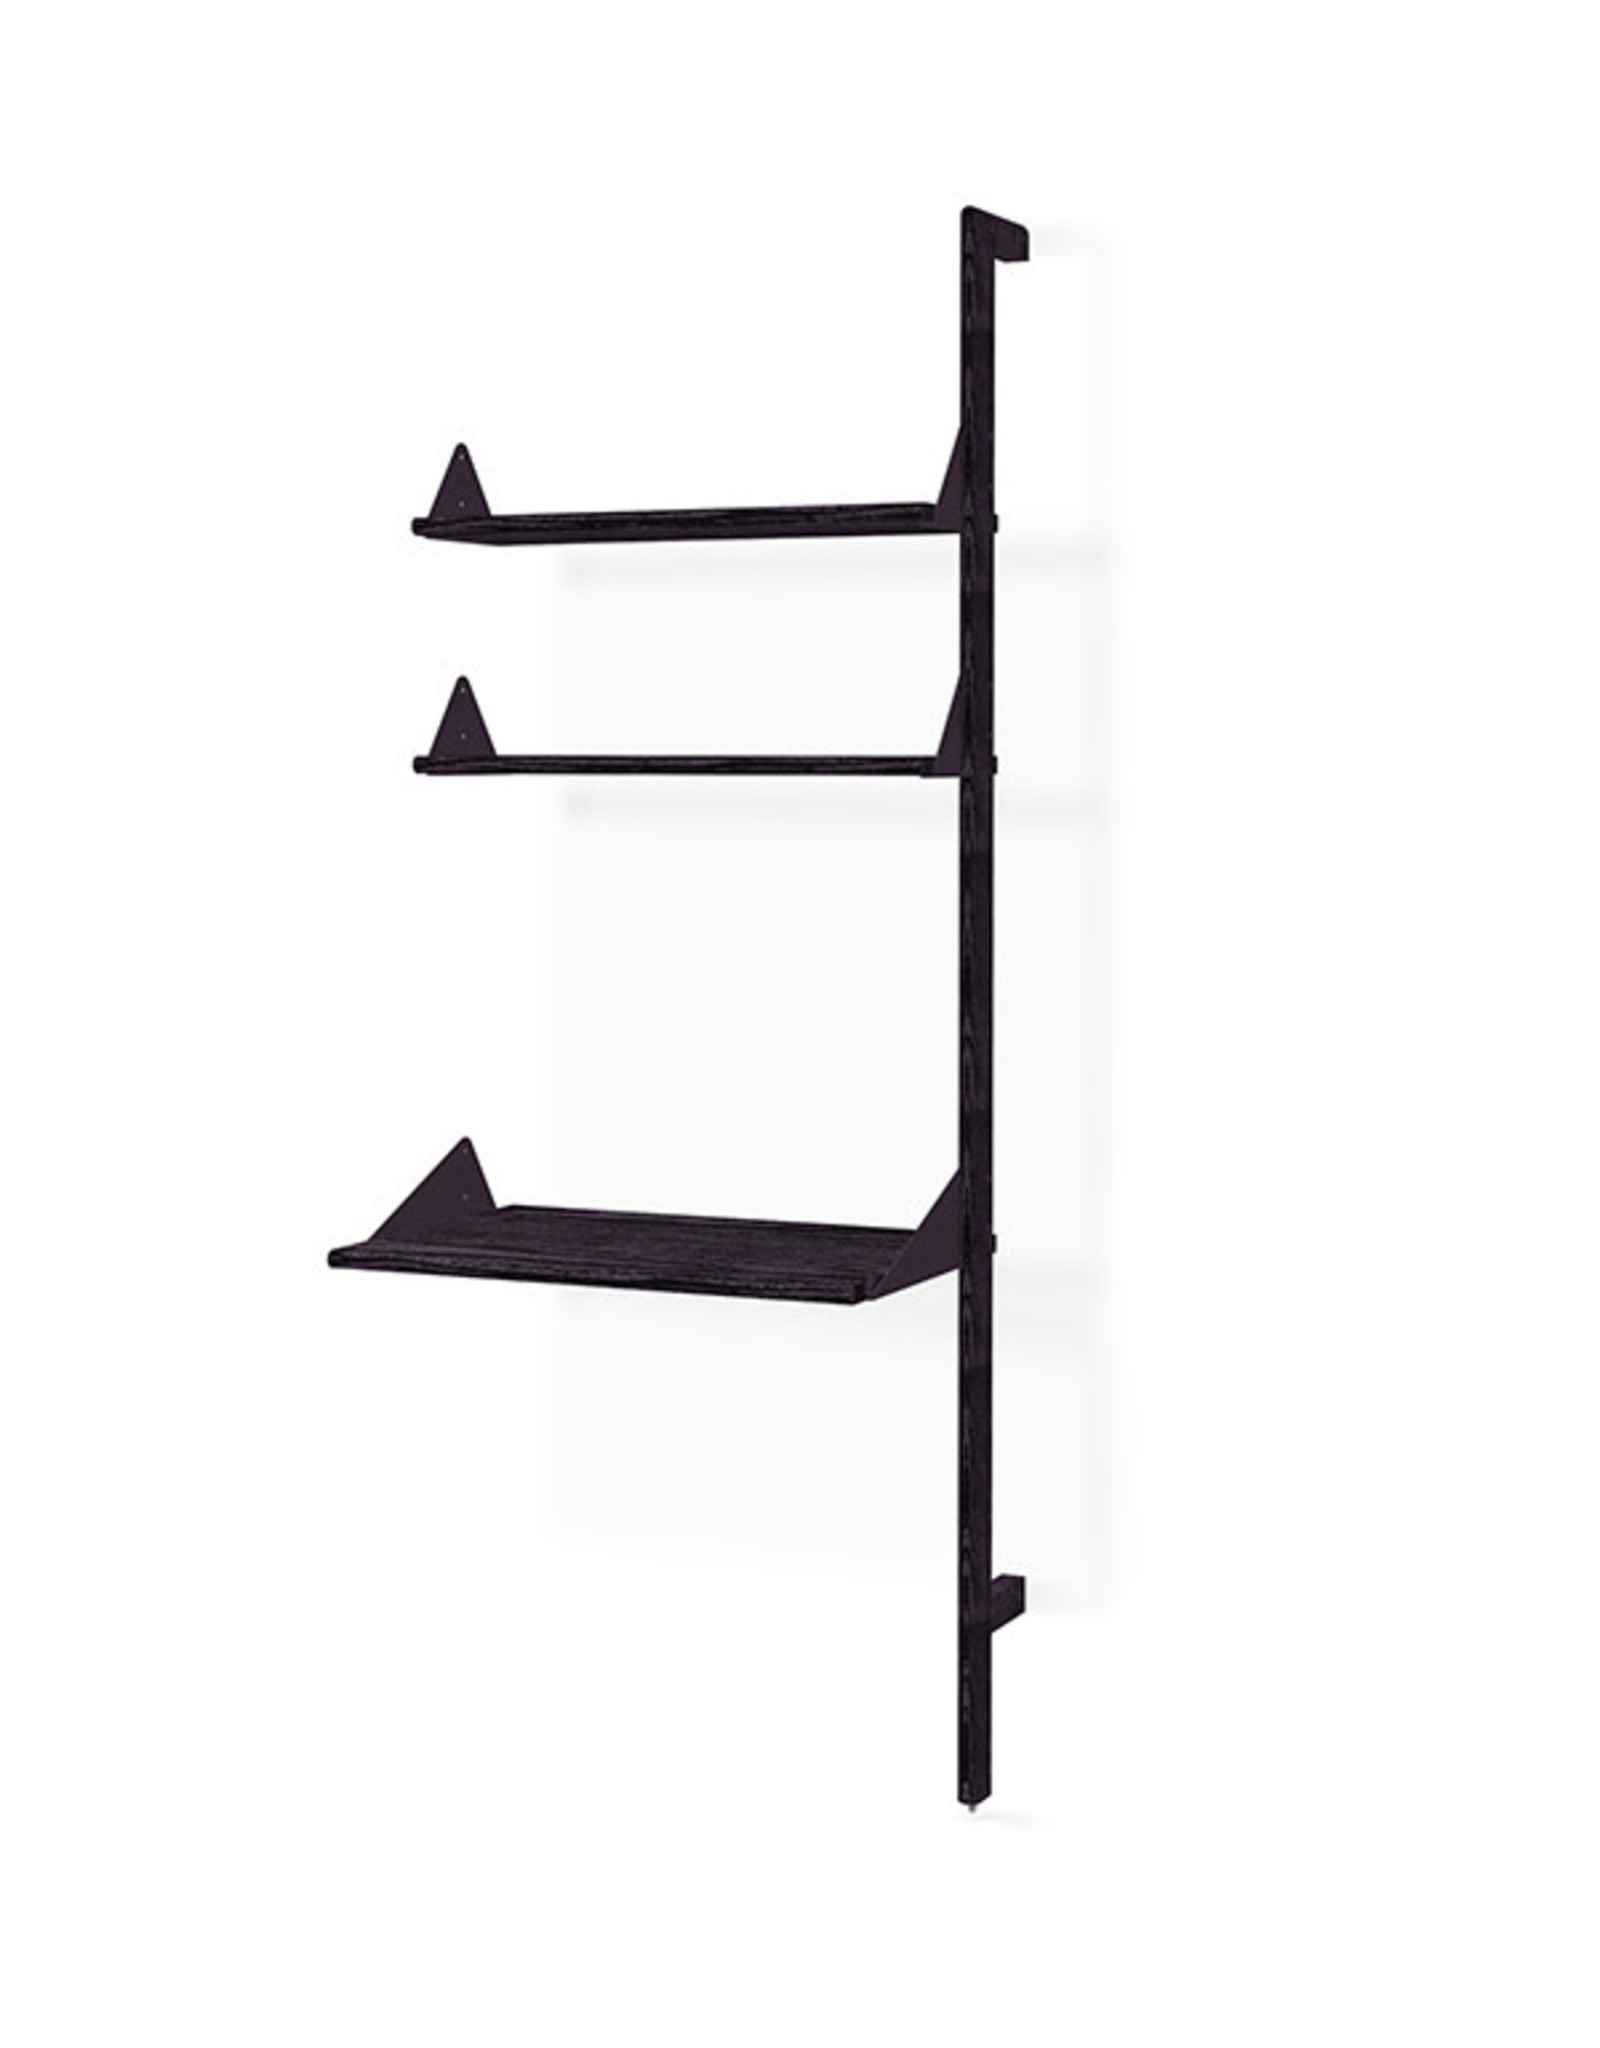 Gus* Modern Branch Desk Shelving Unit Add-on